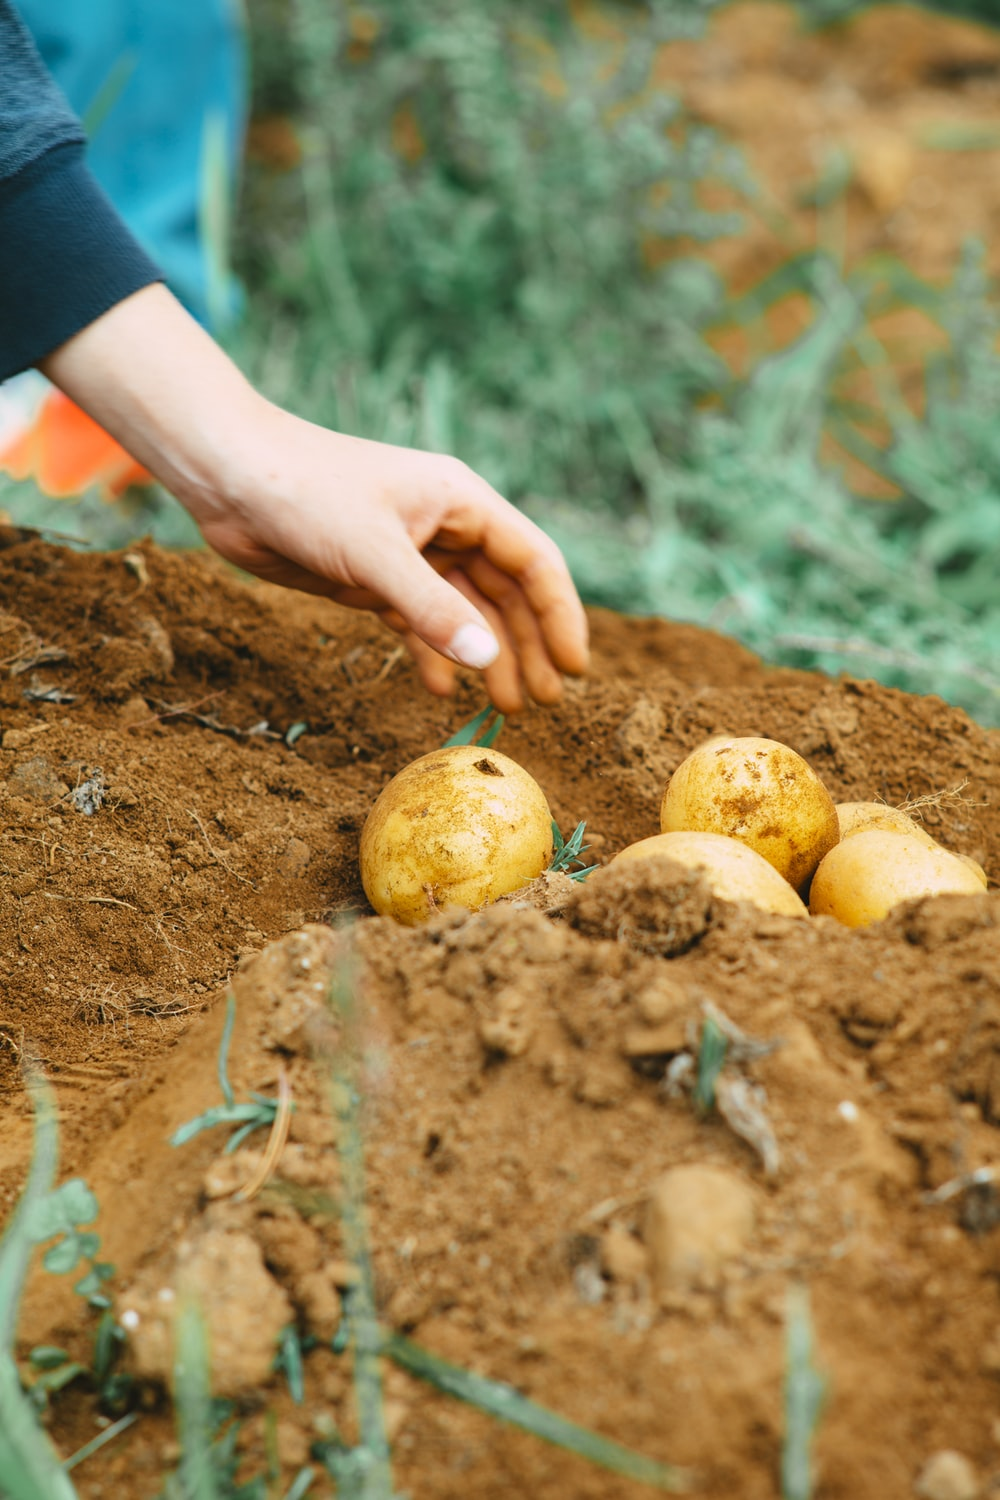 person holding two yellow round fruits